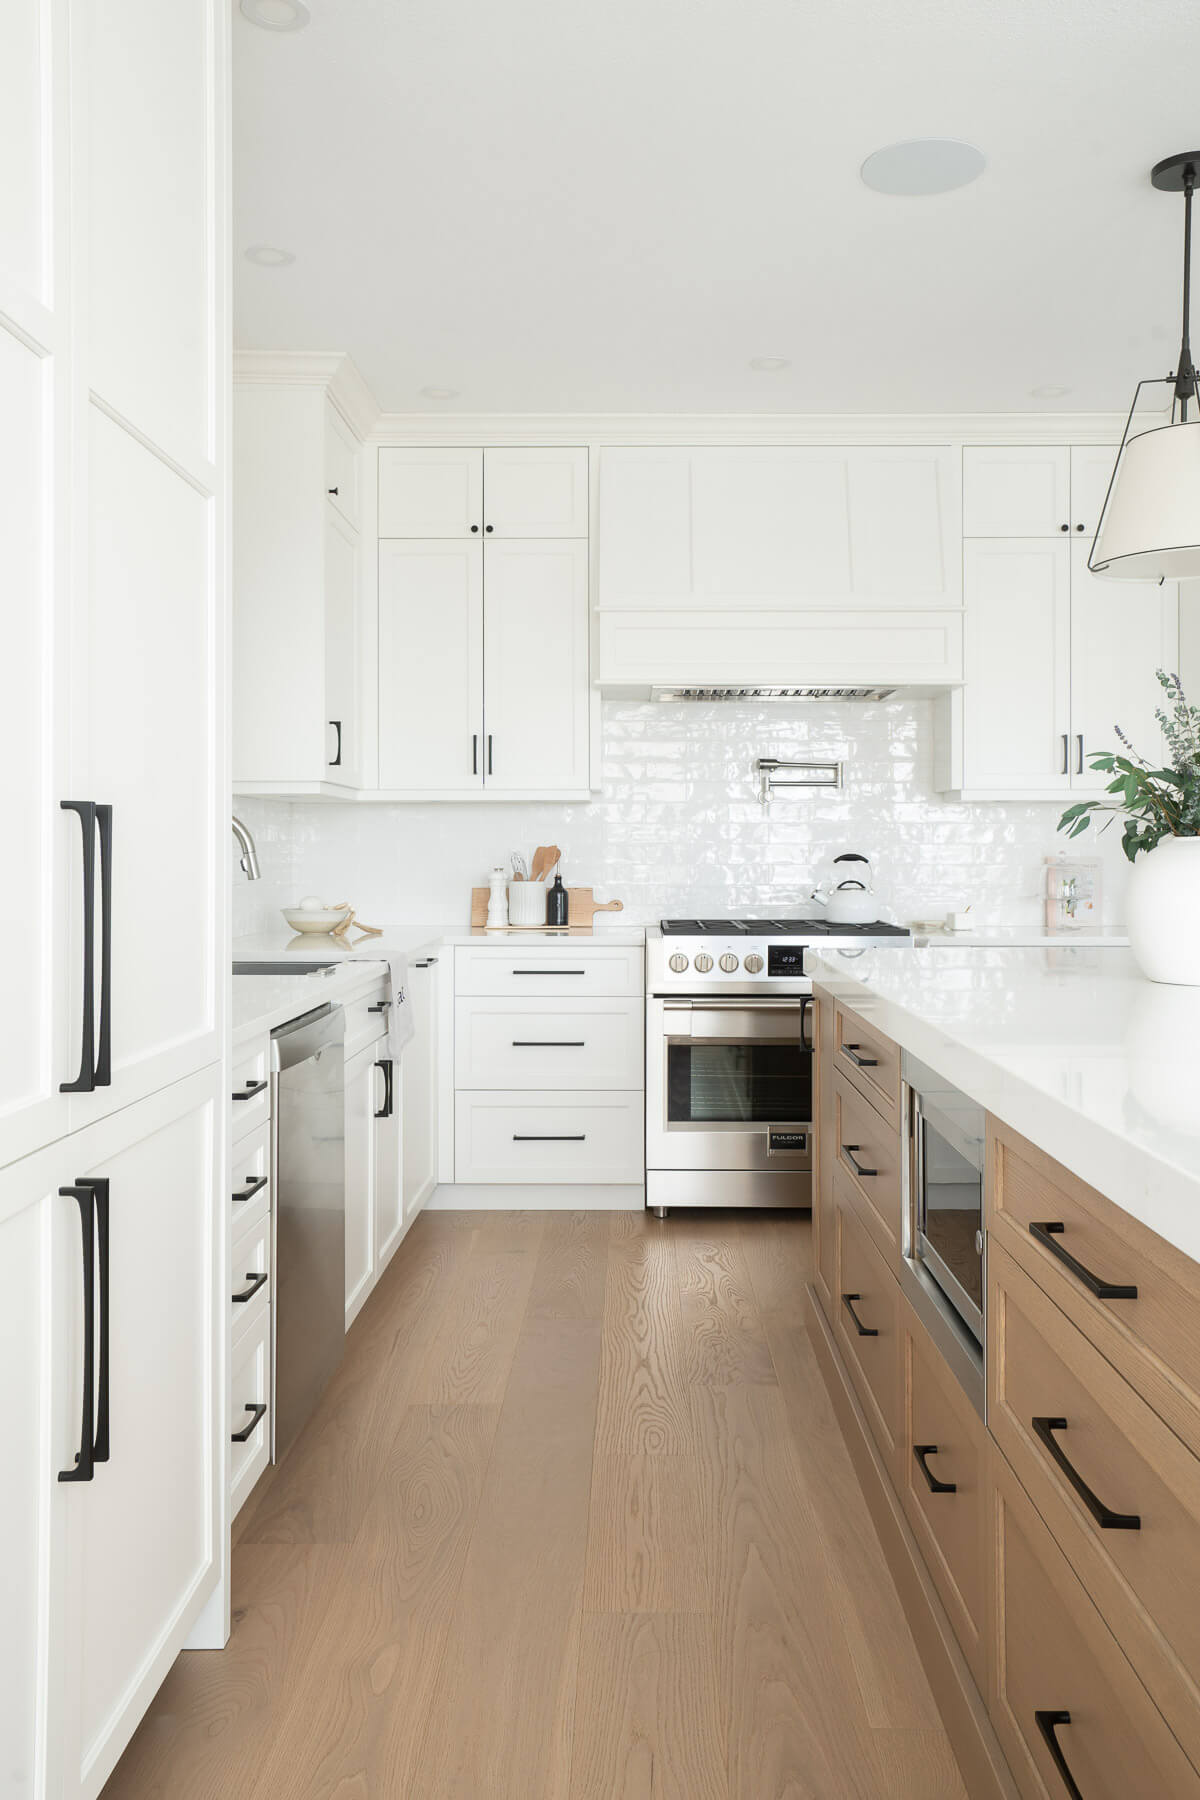 White shaker kitchen cabinetry and hood millwork